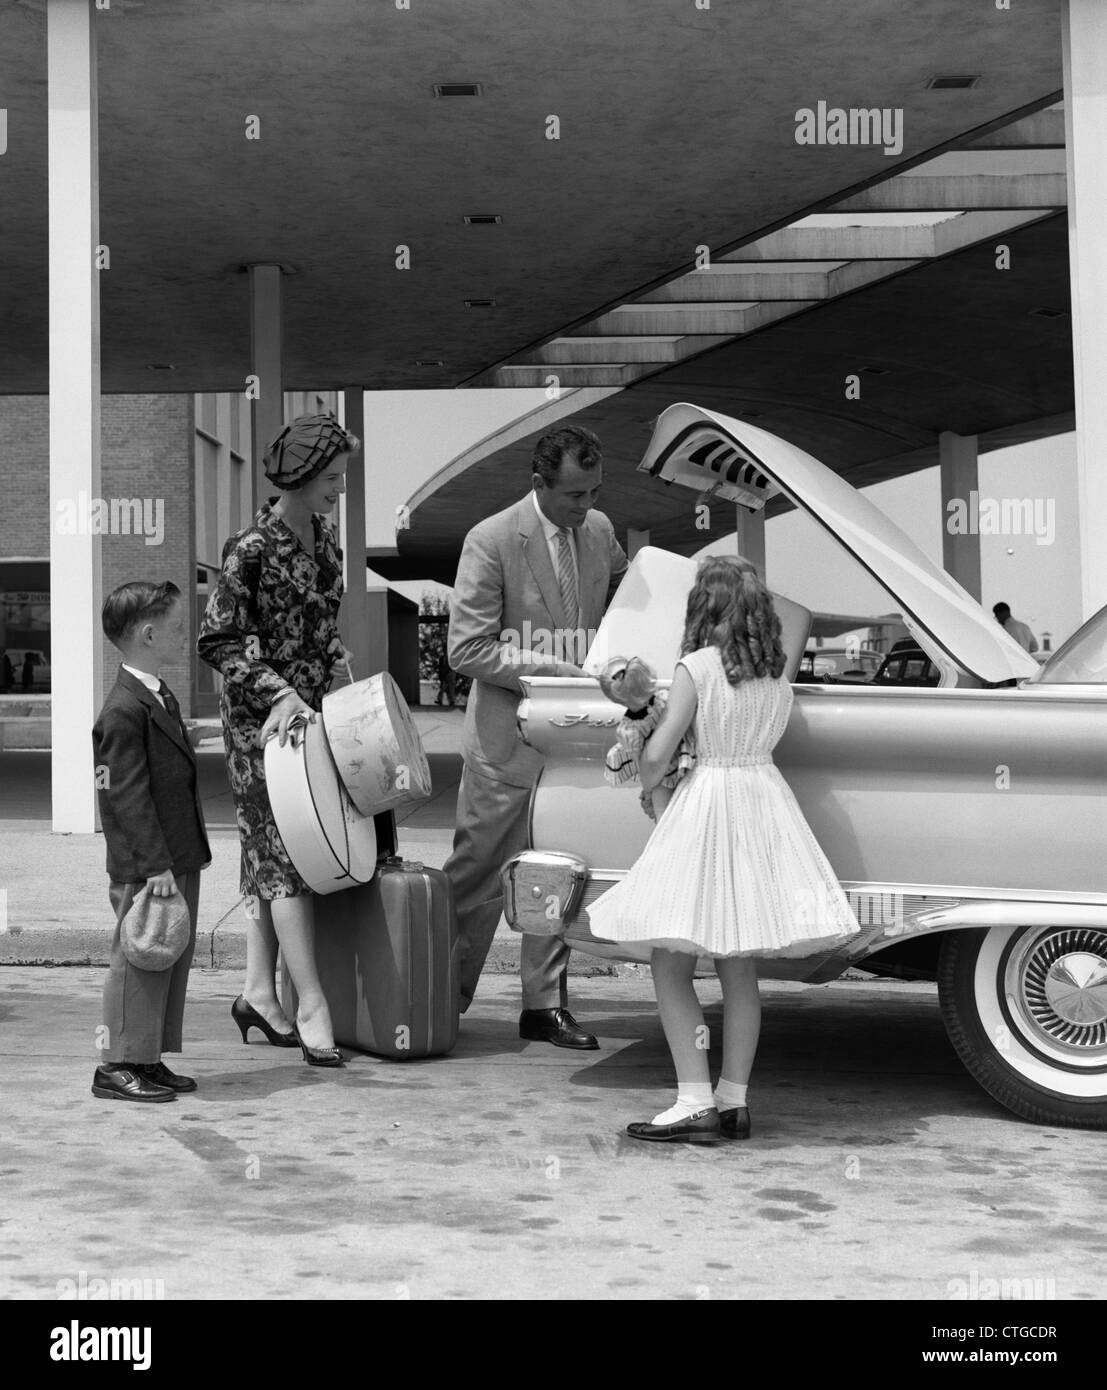 1950s 1960s FAMILY OF FOUR PACKING AUTOMOBILE TRUNK WITH LUGGAGE & HATBOXES - Stock Image